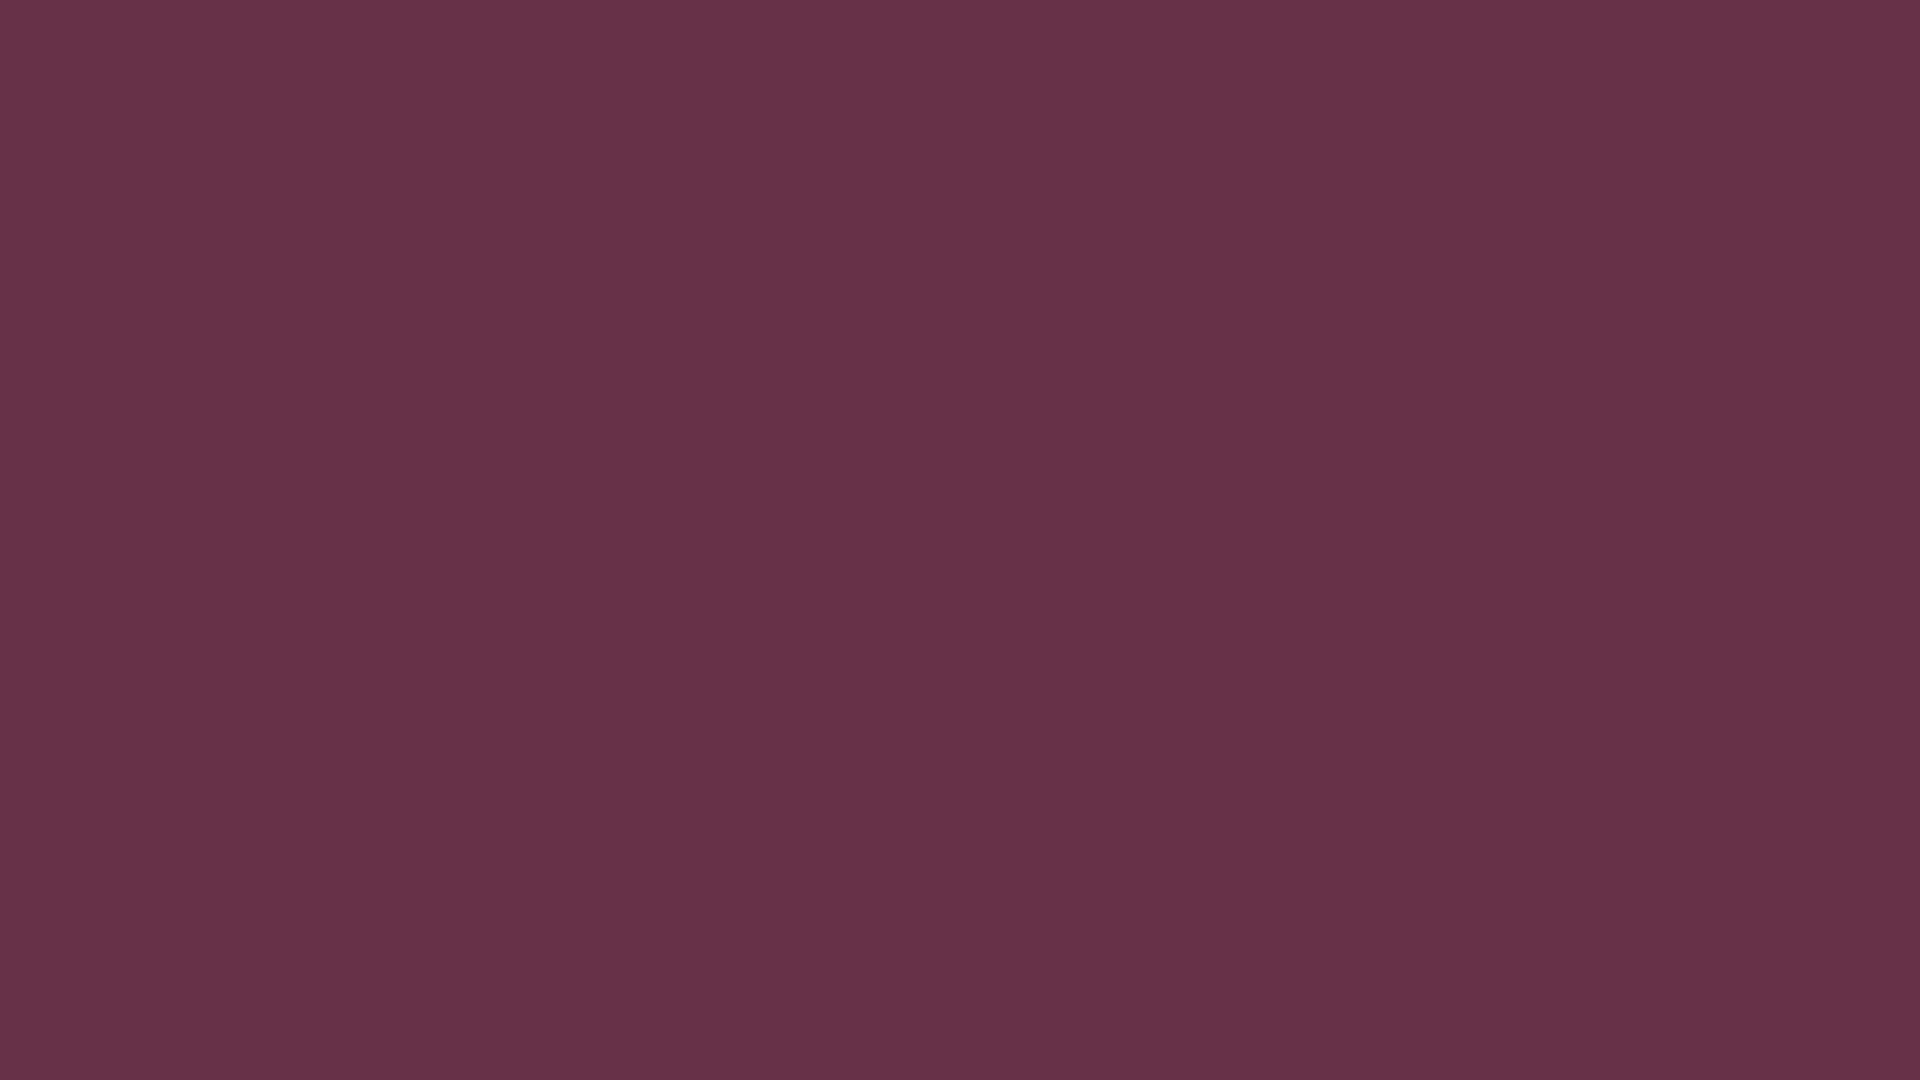 1920x1080 Wine Dregs Solid Color Background